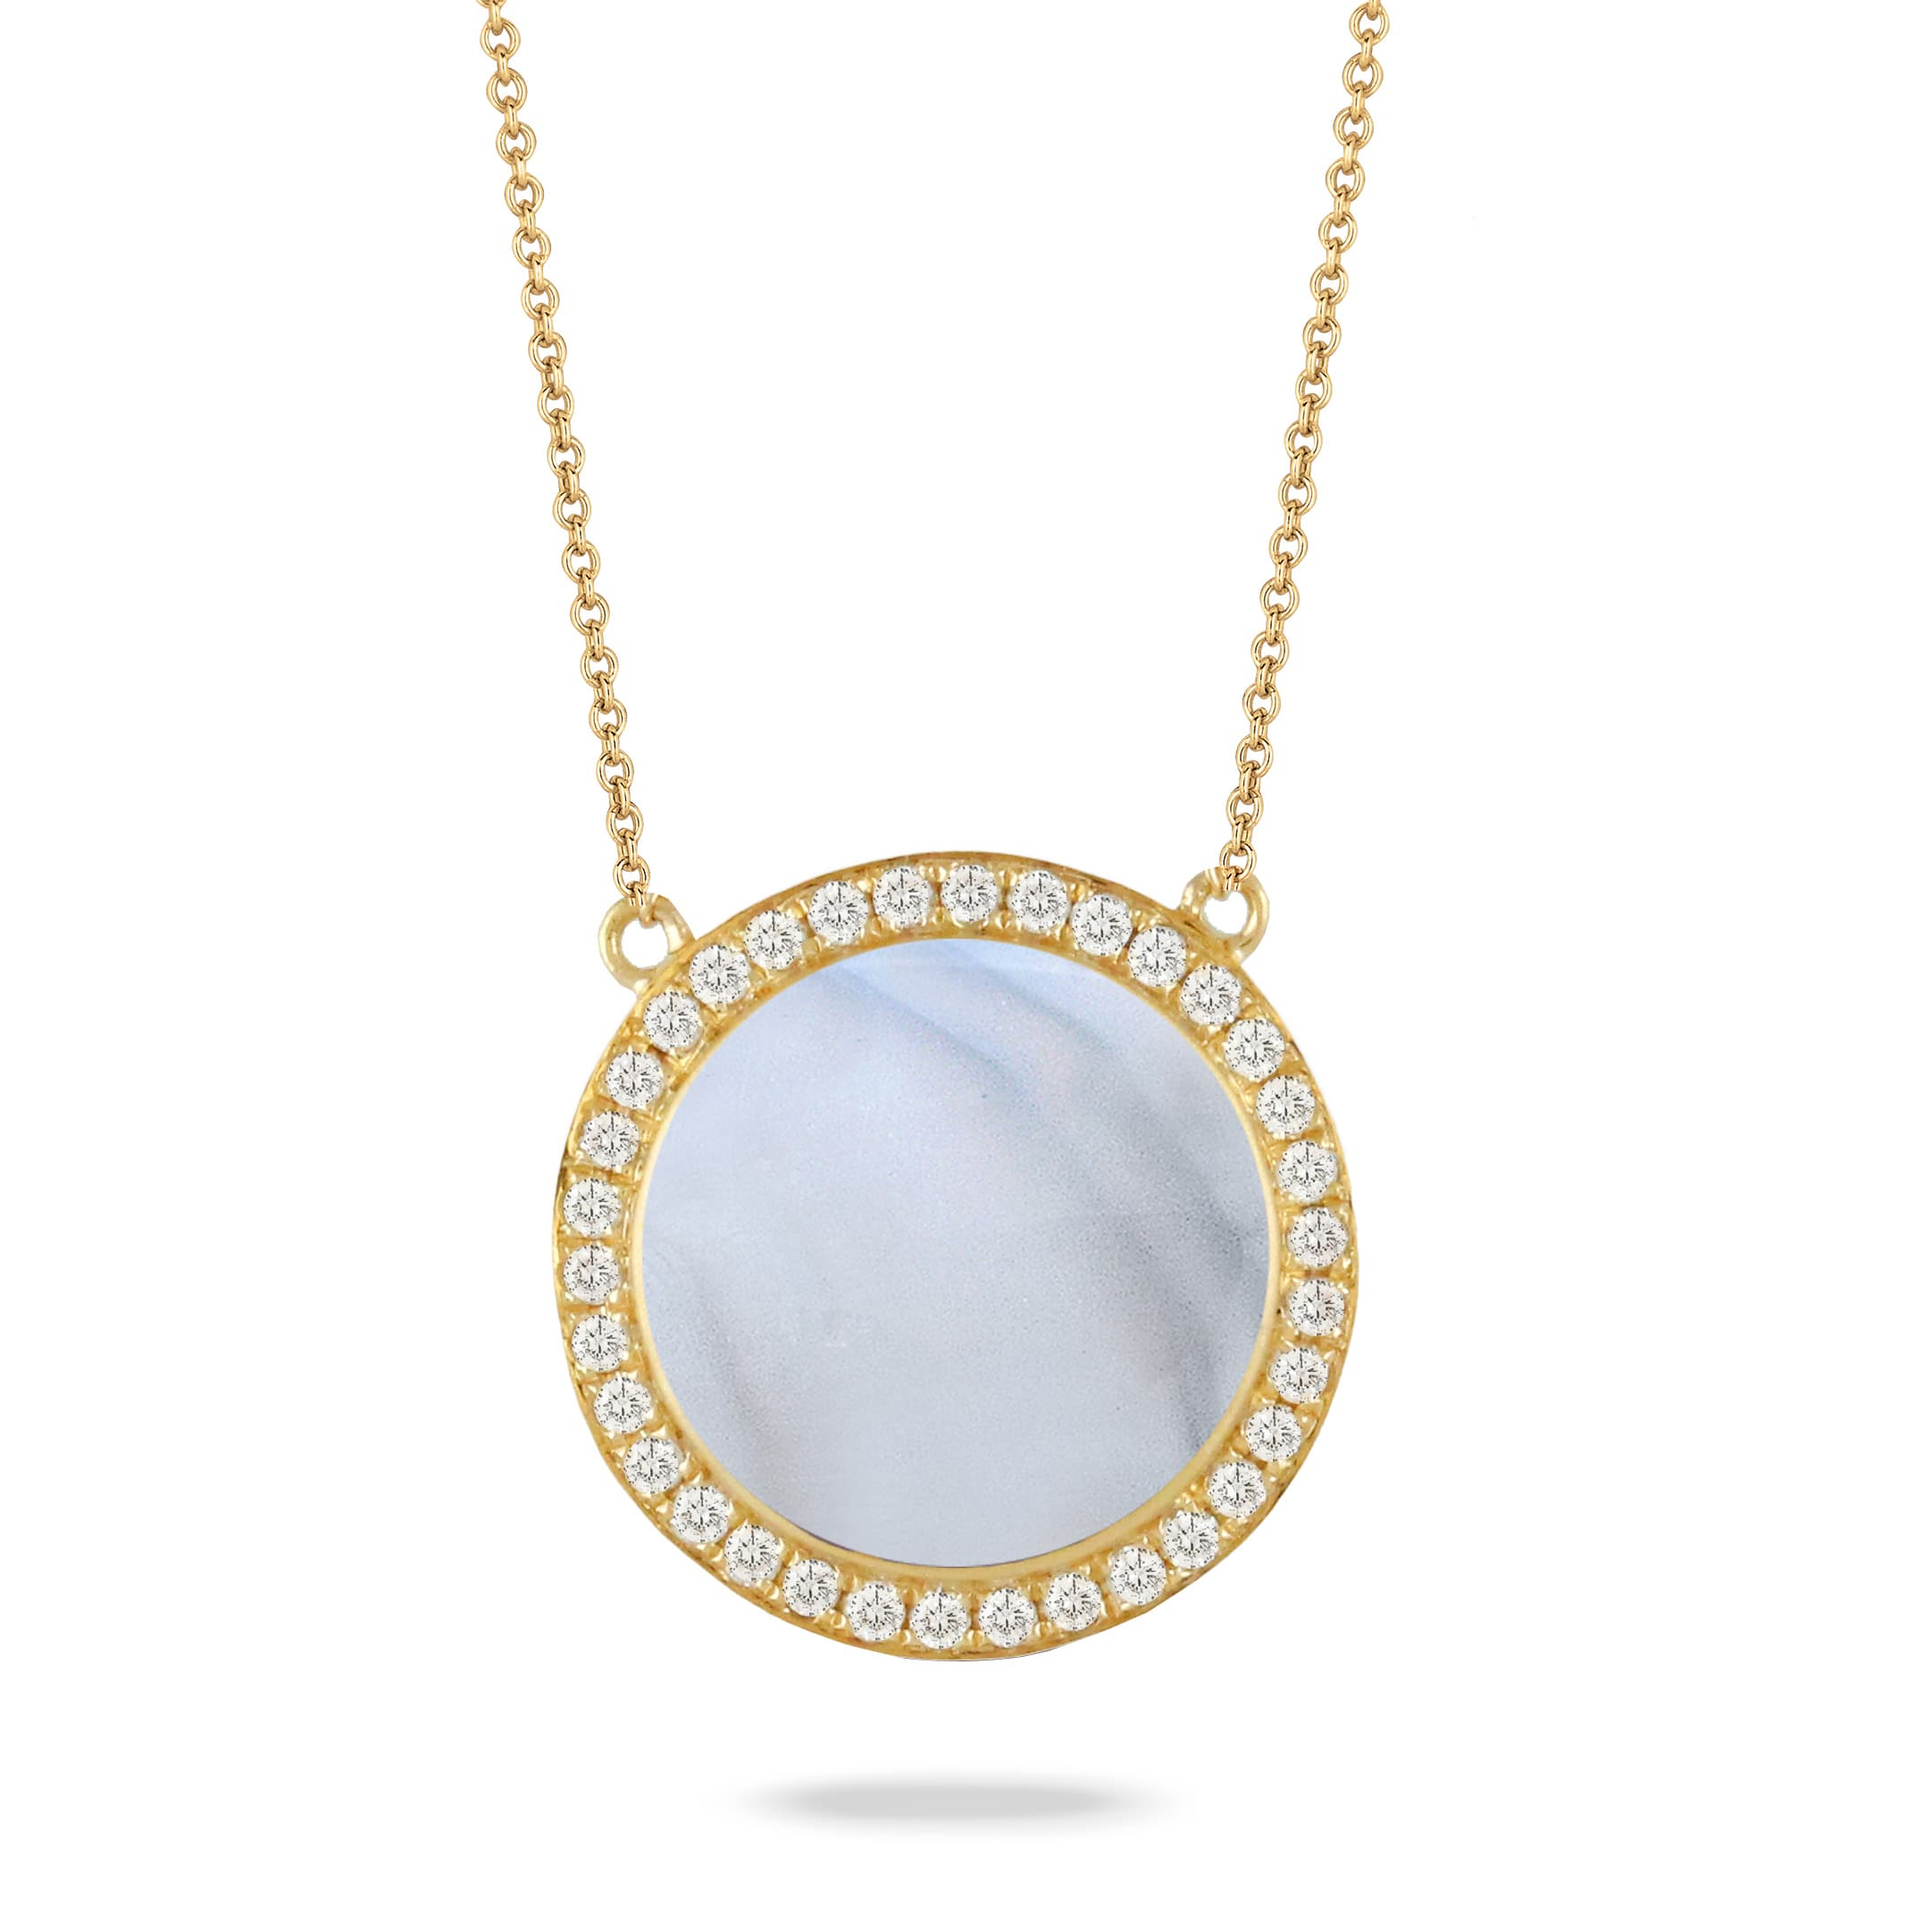 18K YELLOW GOLD DIAMOND NECKLACE WITH GREY AGATE